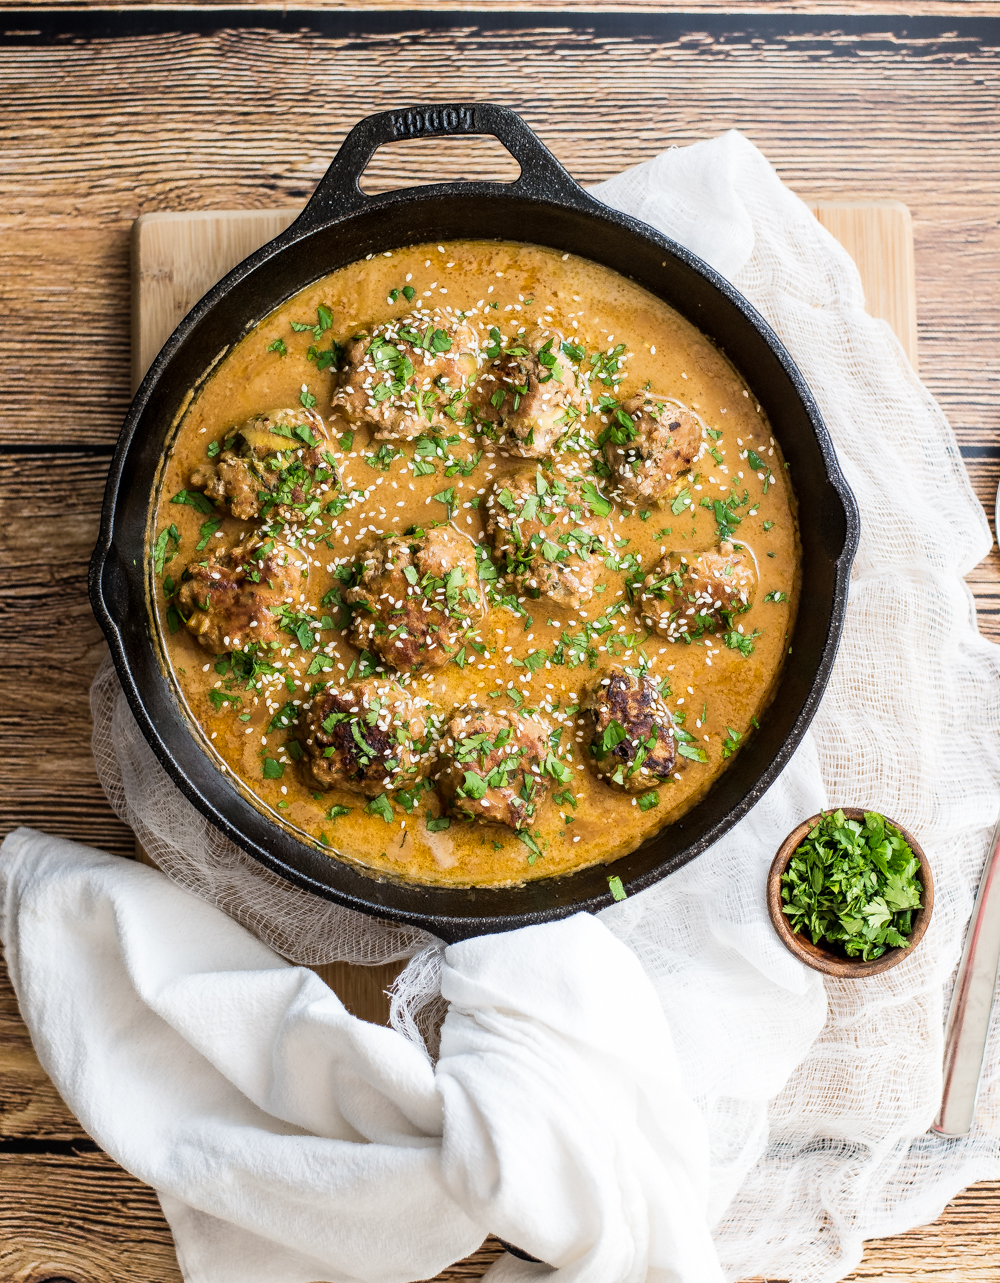 One pan turkey zucchini meatballs in Bangkok peanut sauce™ is the perfect weeknight meal. It is popping with texture and doesn't lack in flavor thanks to House of Tsang's Bangkok Peanut Sauce™!